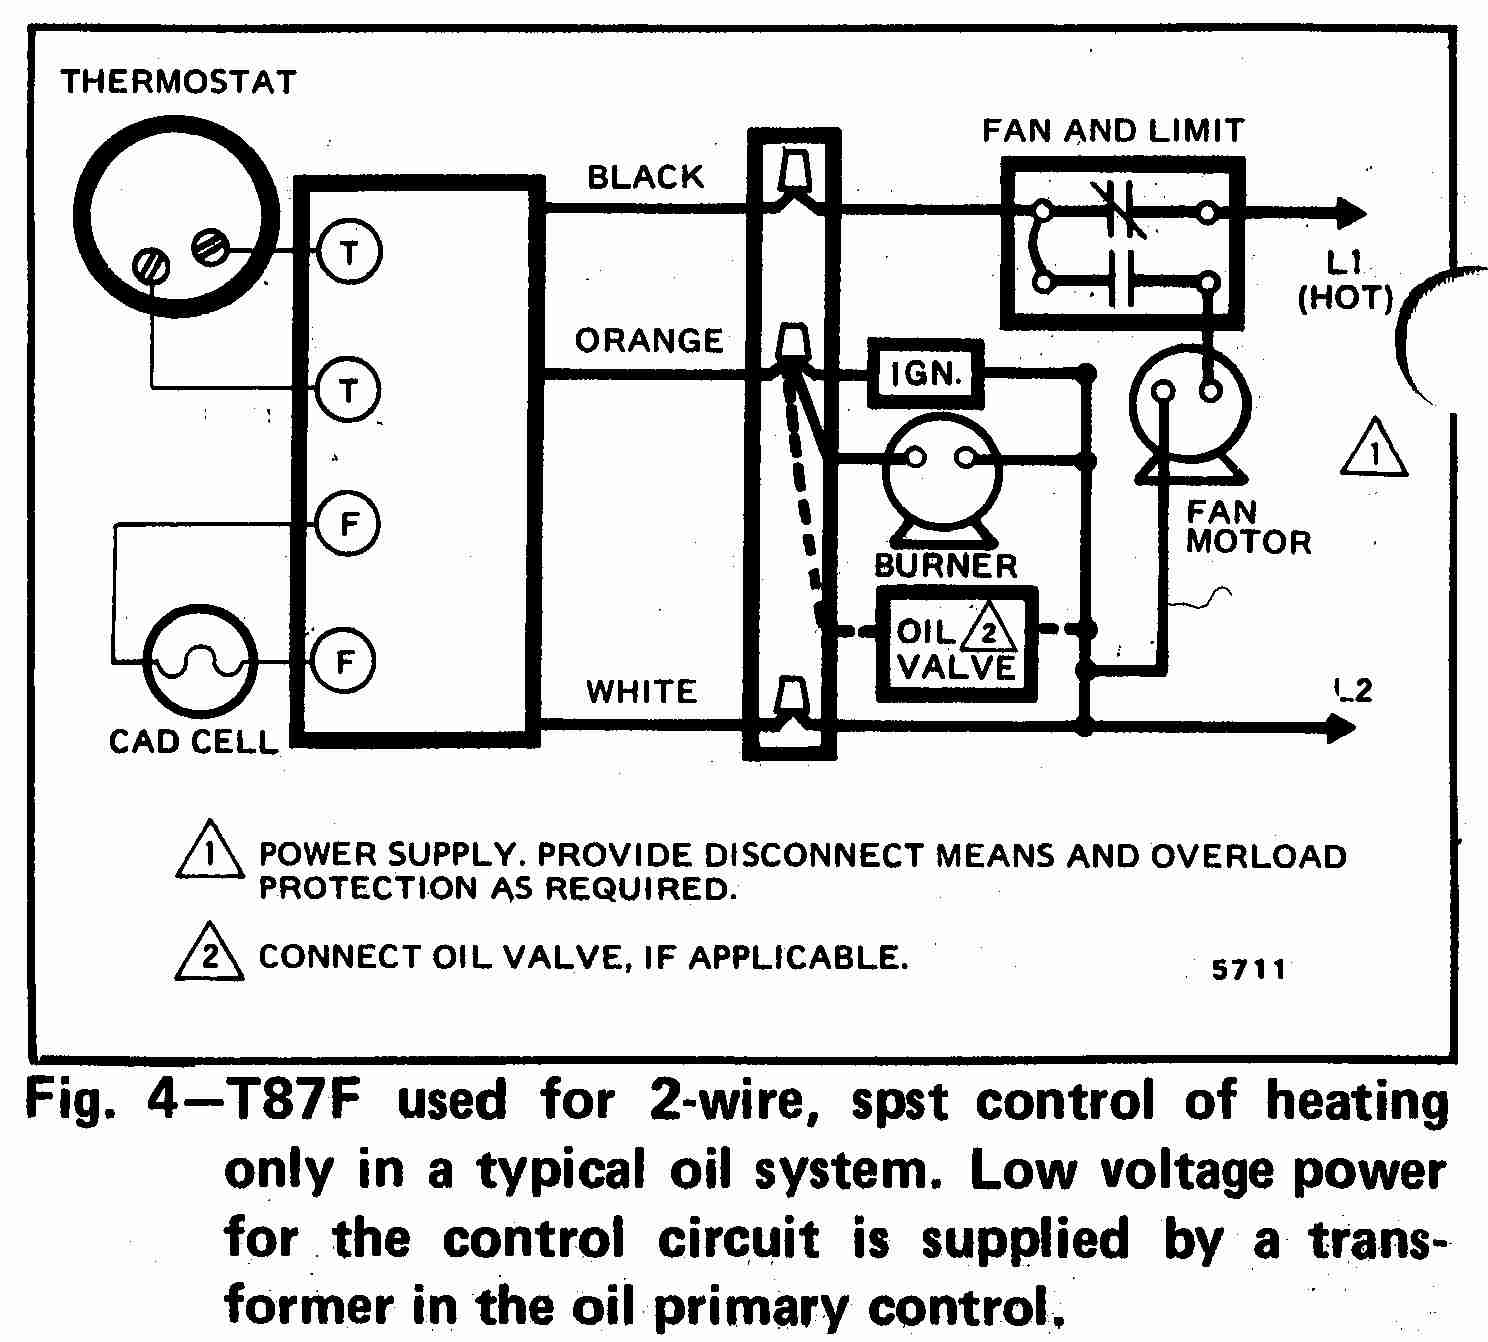 Room Thermostat Wiring Diagrams For Hvac Systems Lead Motor Diagram Free Download Schematic Honeywell T87f 2 Wire Spst Control Of Heating Only In